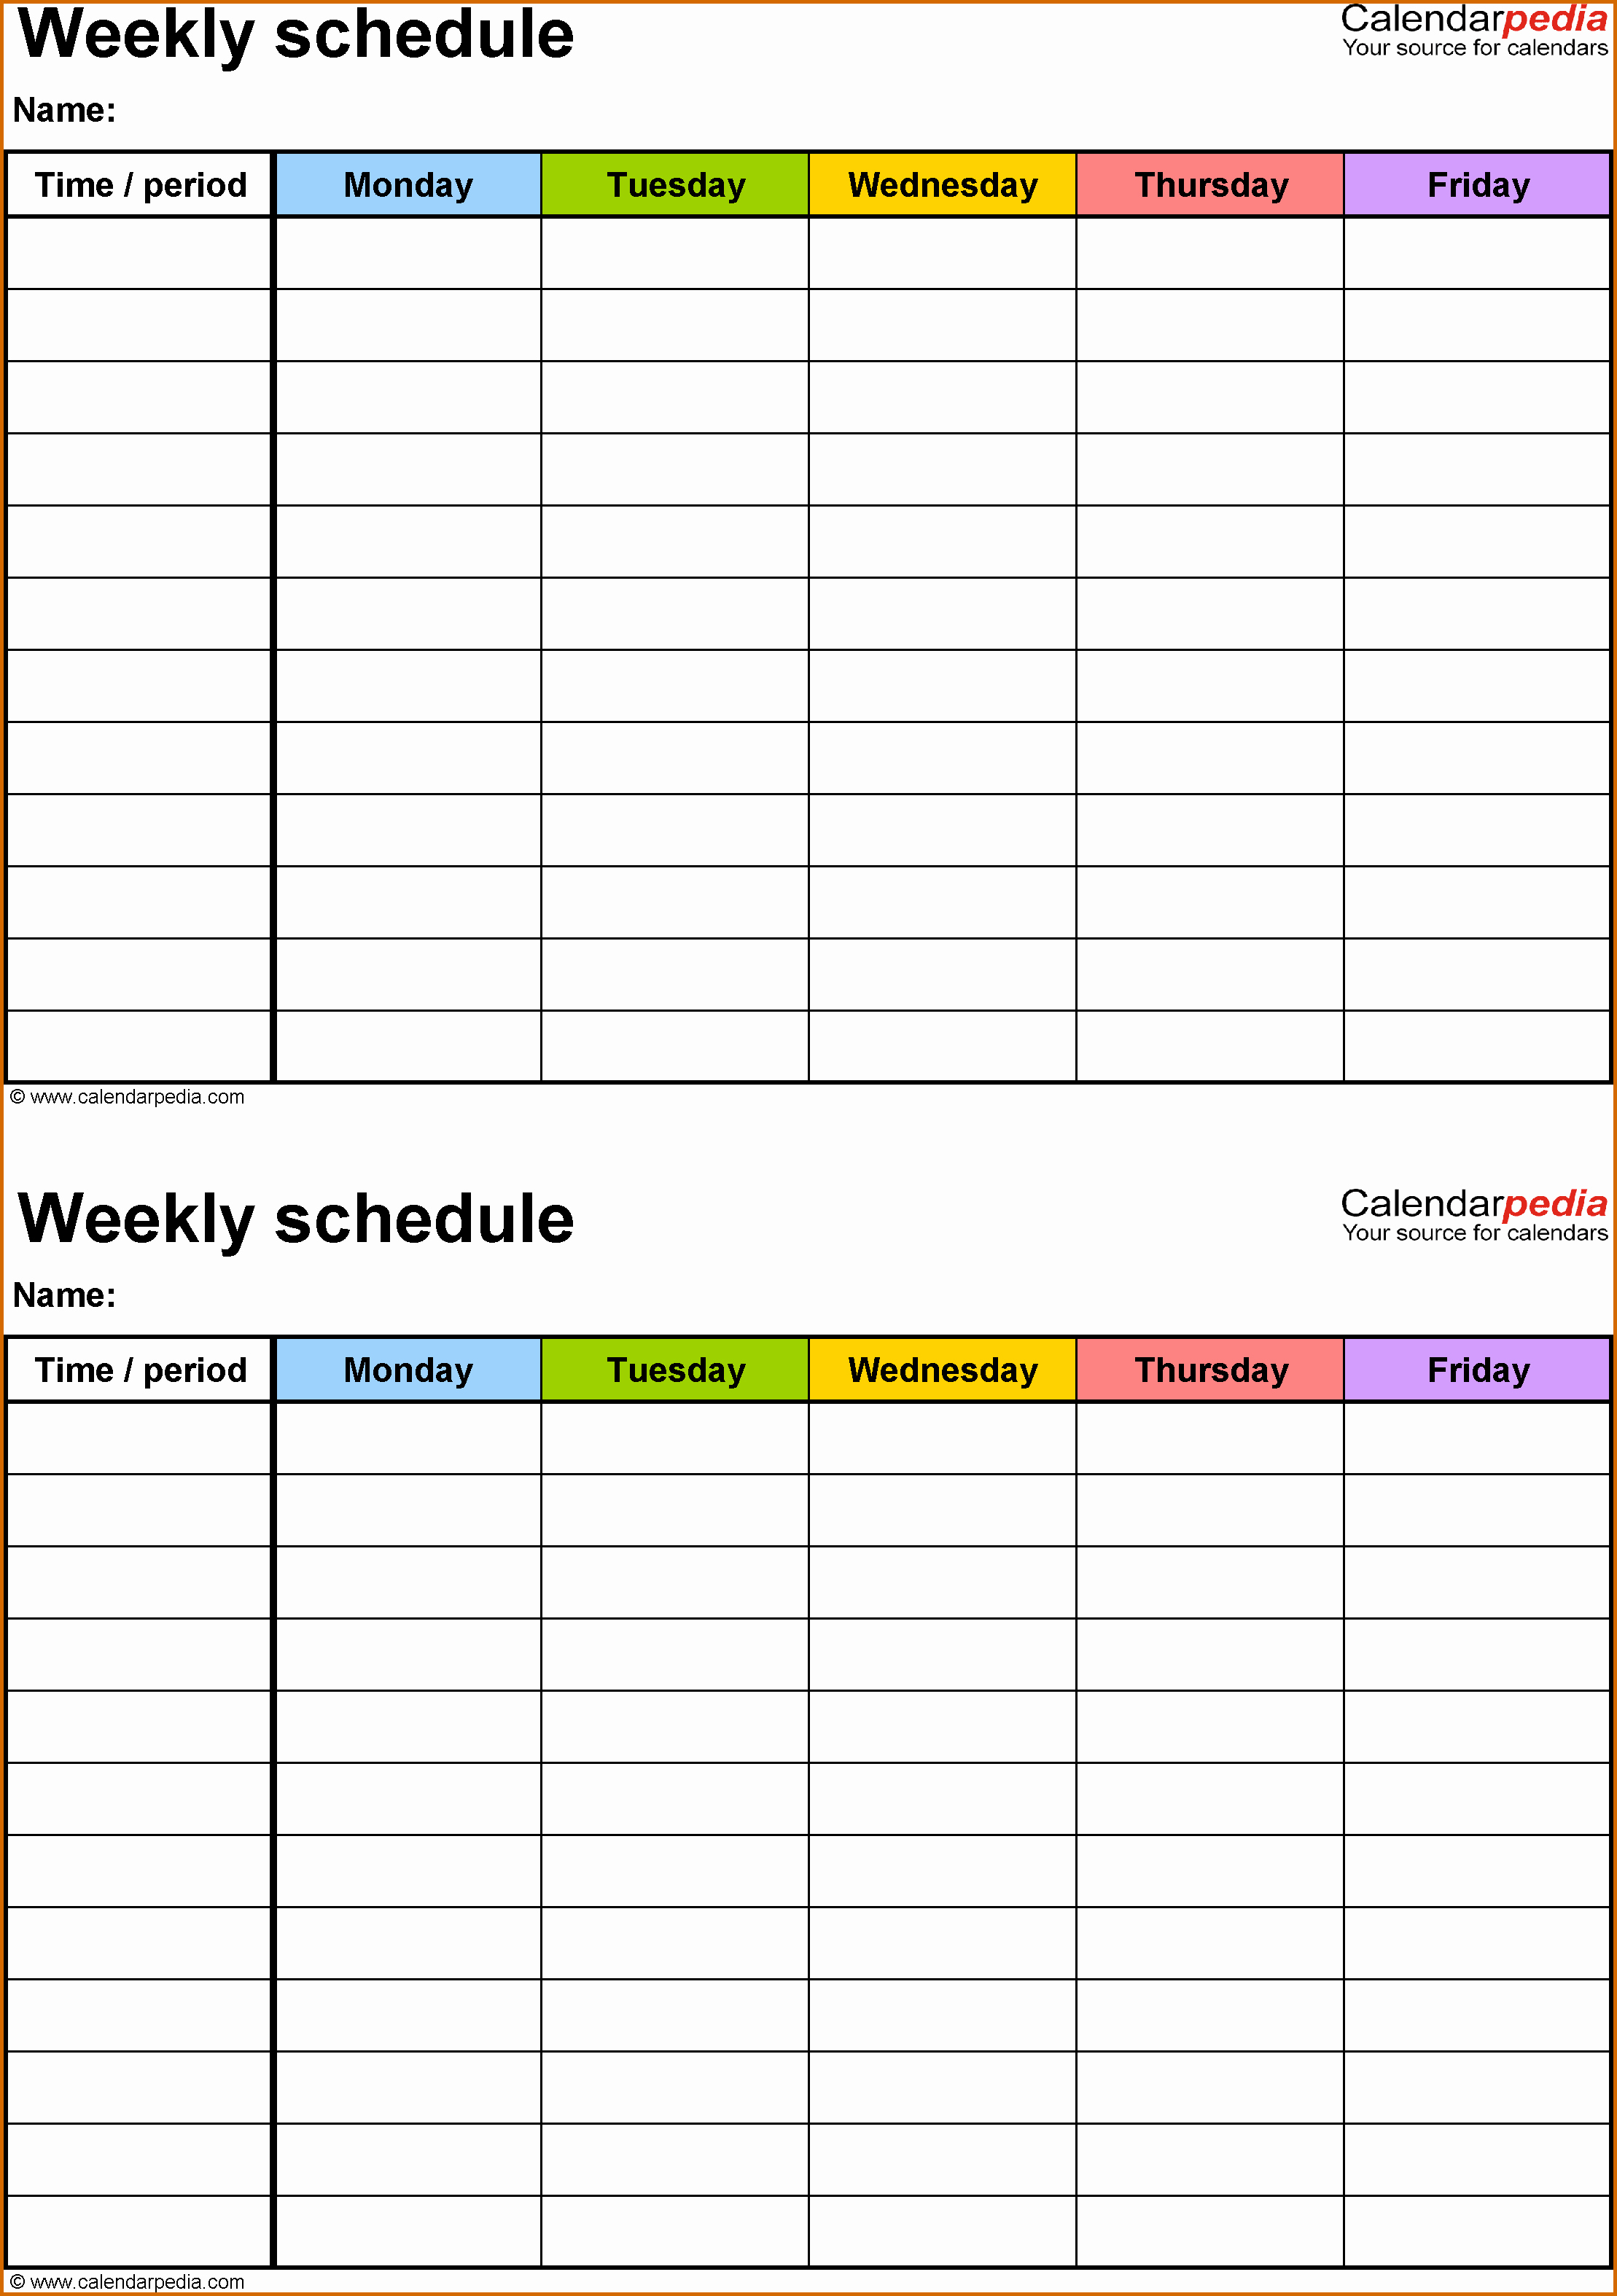 Printable Daily Schedule Template Elegant 10 Weekly Class Schedule Template Printable